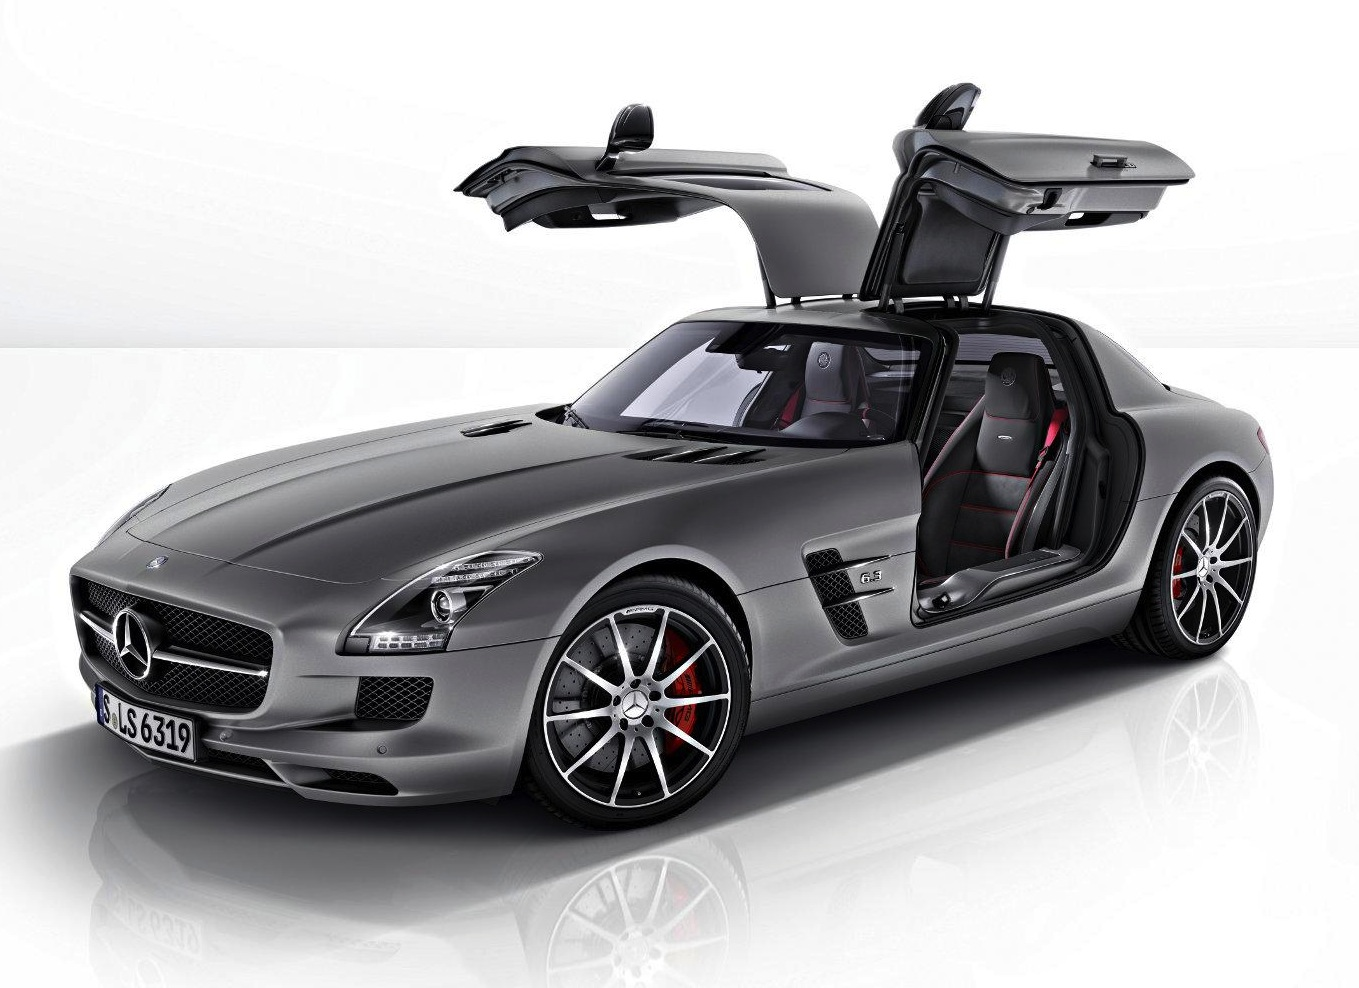 mercedes benz sls amg gt coupe ForMercedes Benz Sls Amg Gt Coupe